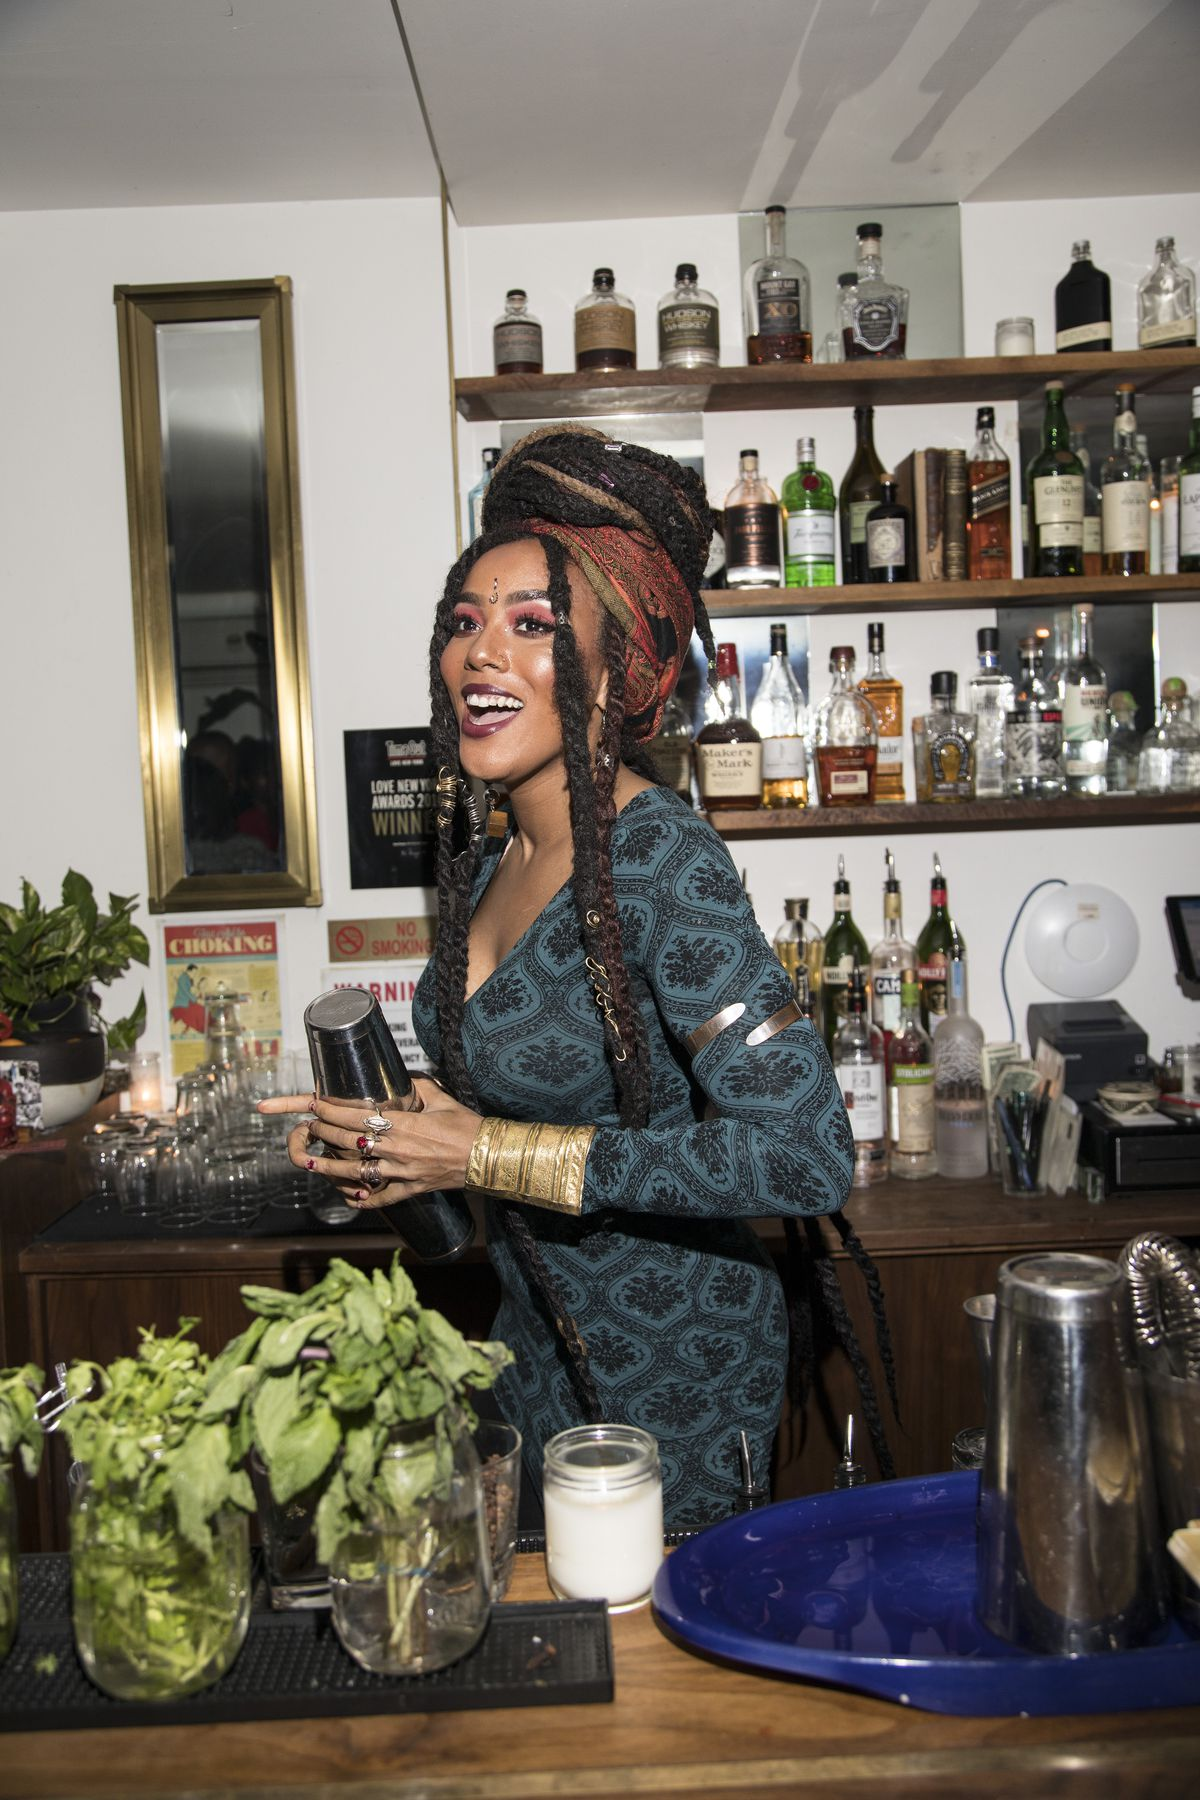 A bartender at Ode to Babel smiles at patrons